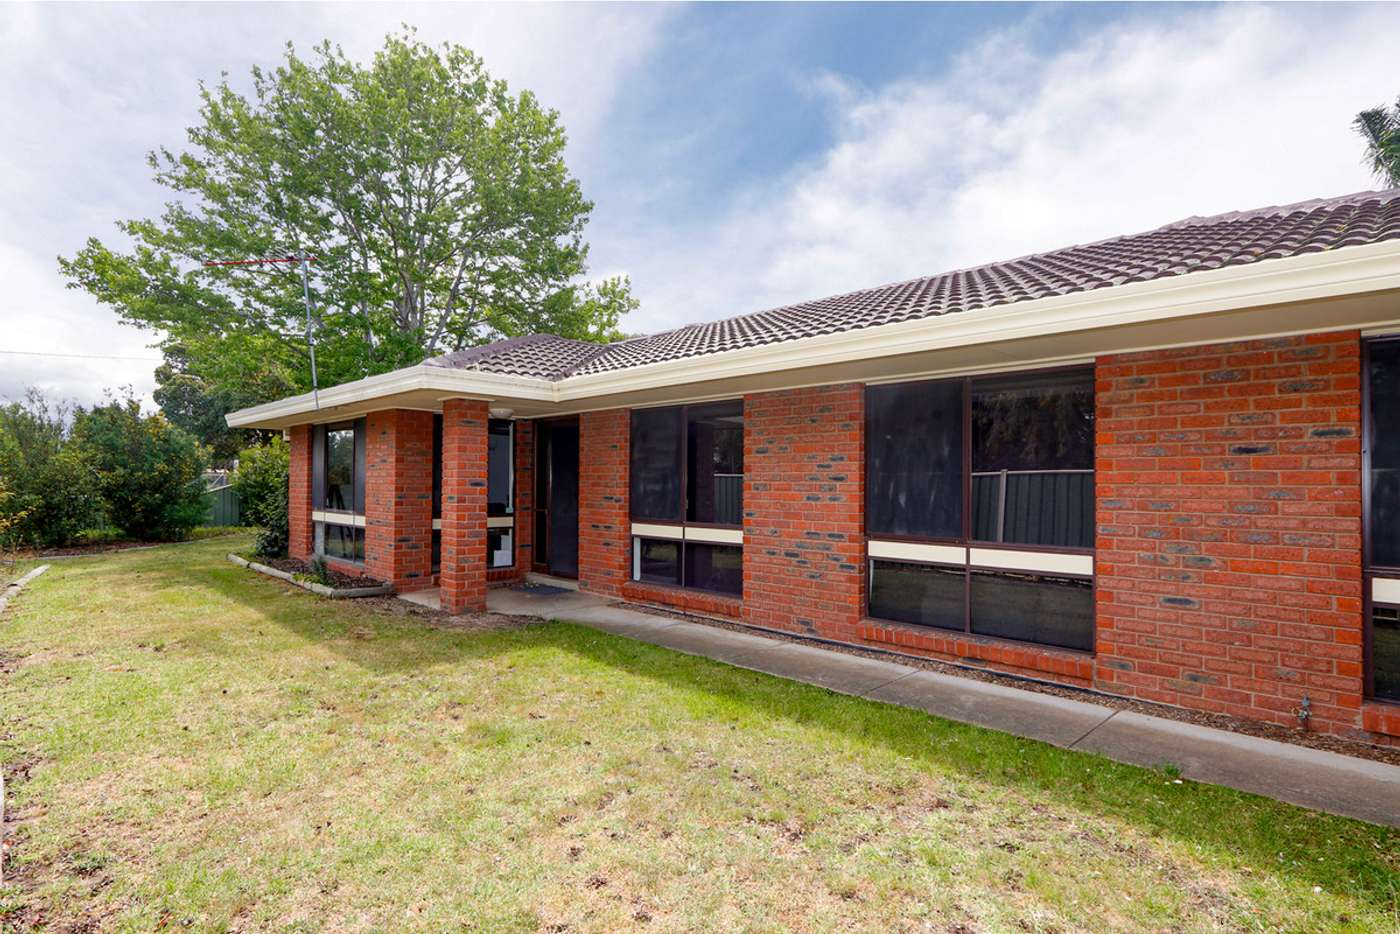 Main view of Homely house listing, 53 Inglis Street, Sale VIC 3850